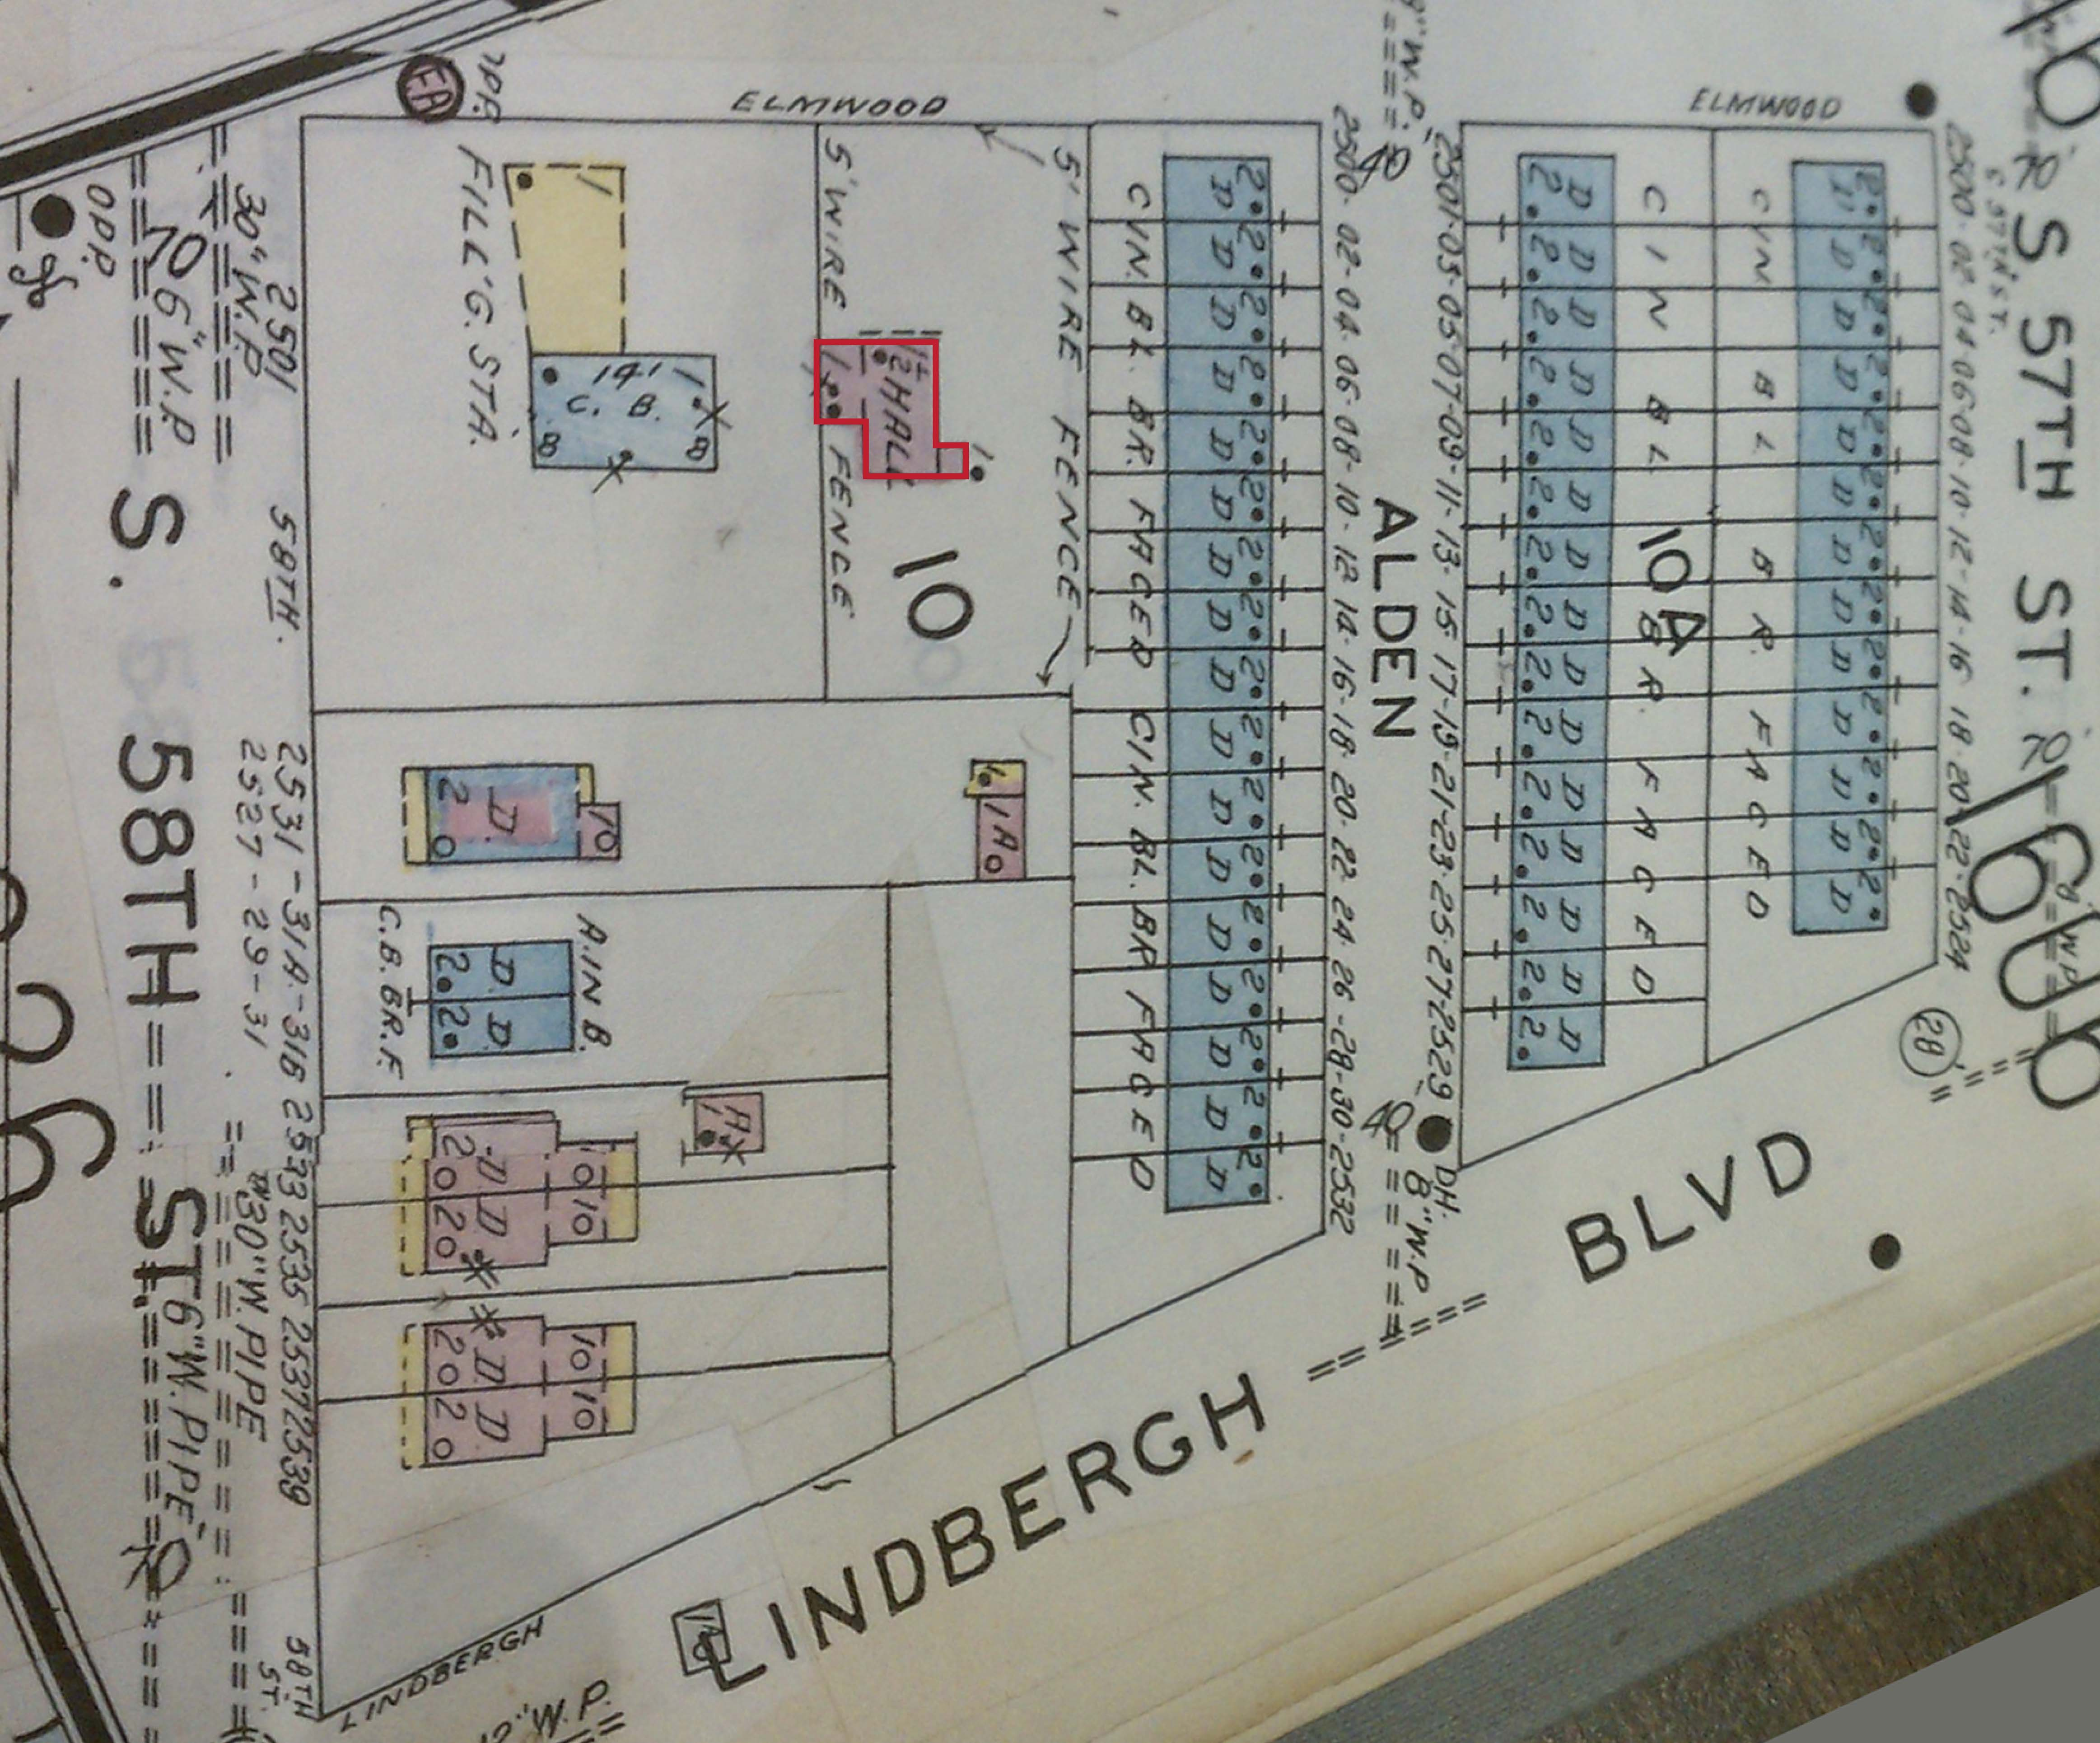 1958 Sanborn map shows new residential subdivision. Original estate house has been demolished.